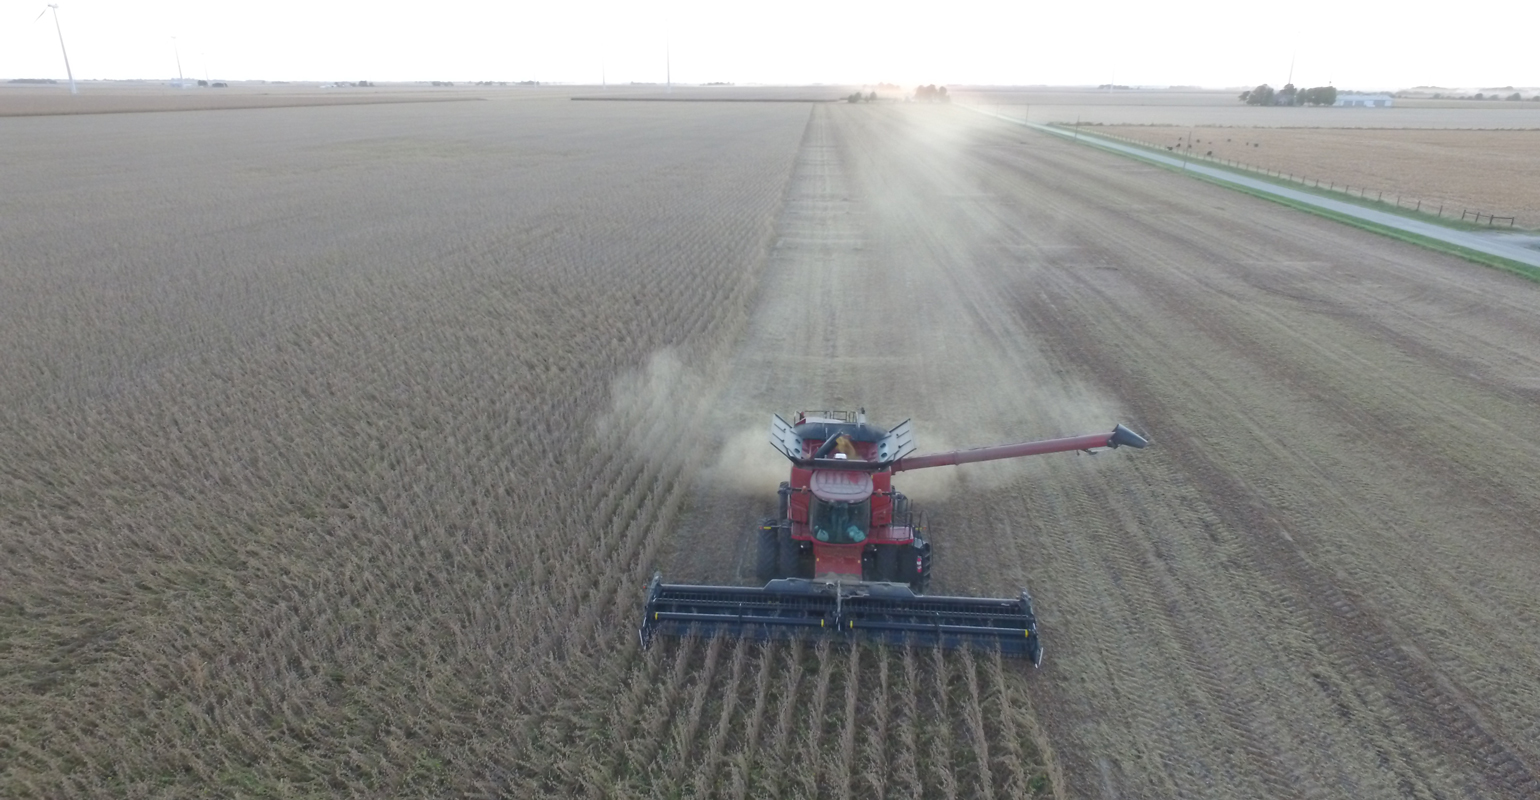 aerial photo of combine harvesting beans